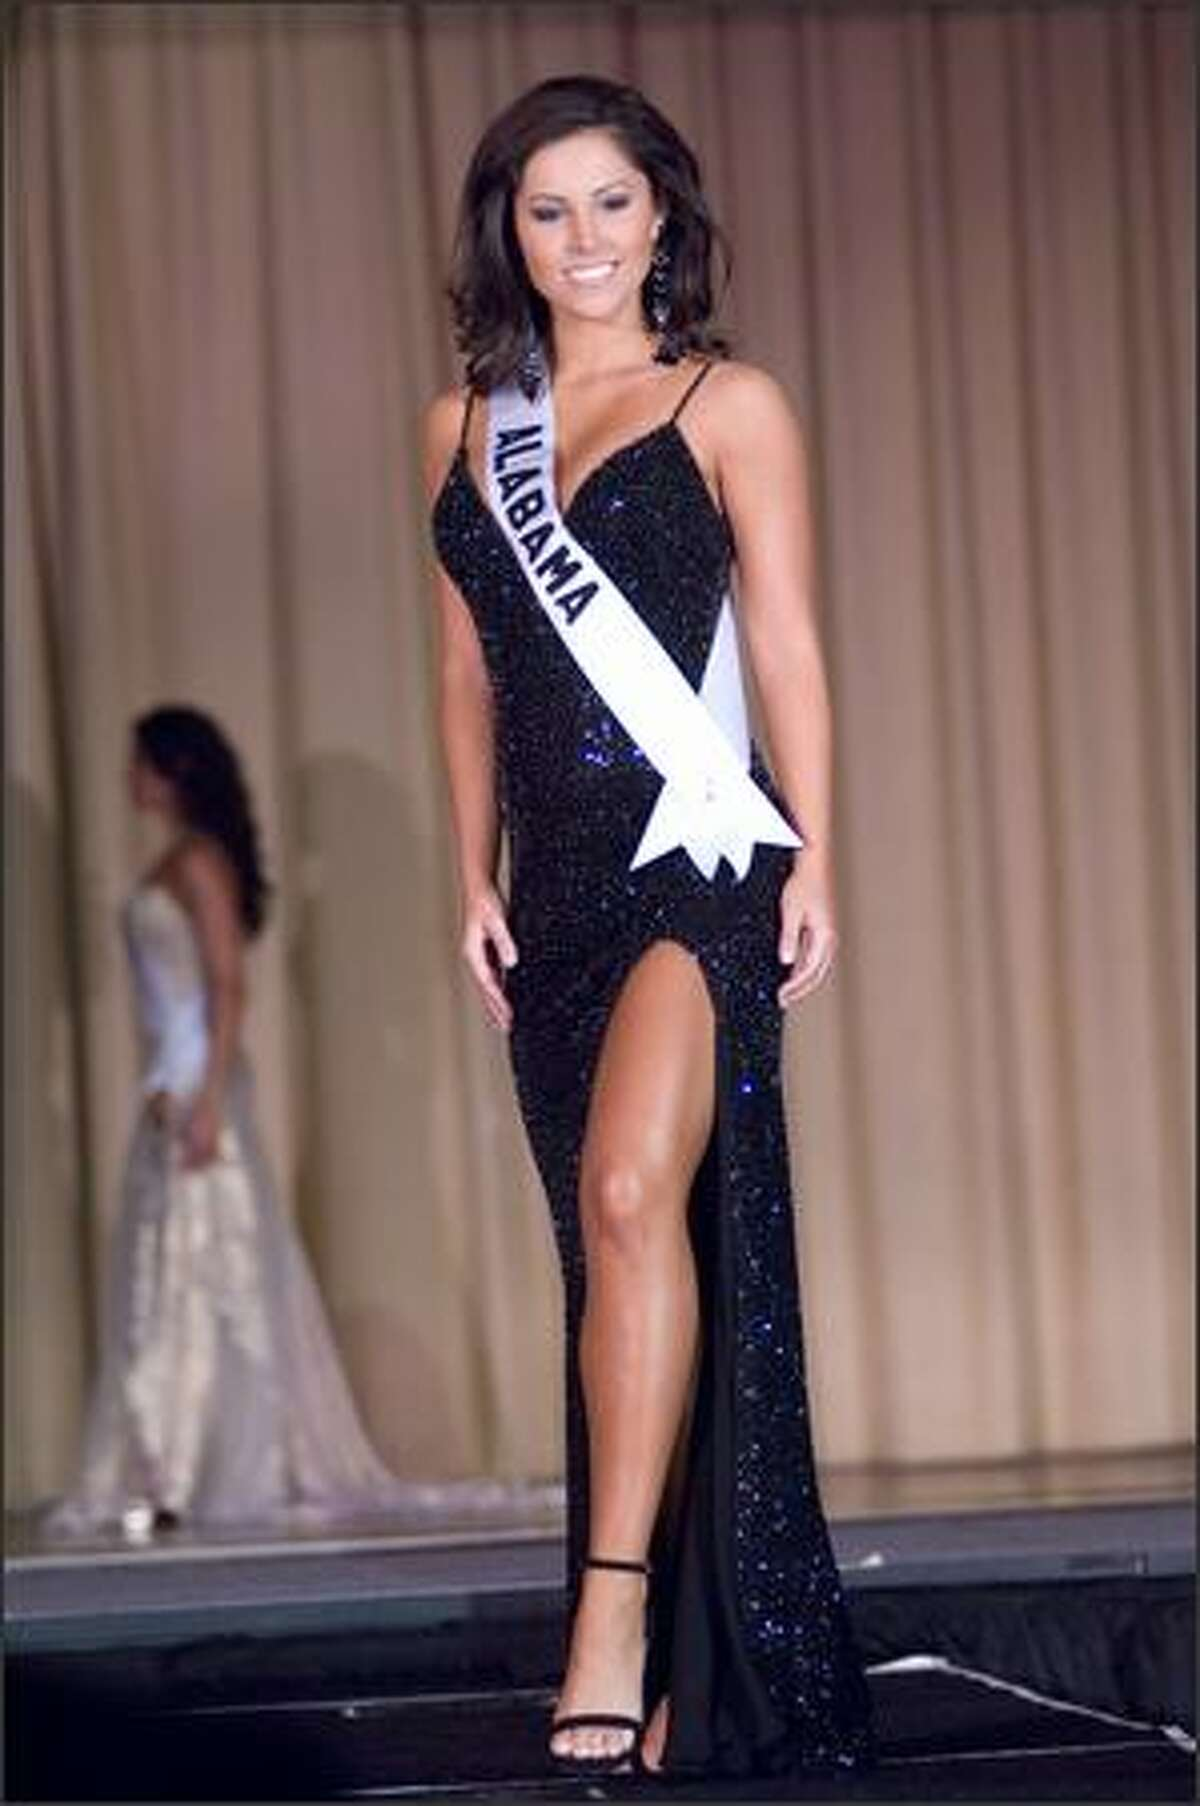 Rebecca Moore, Miss Alabama USA 2007, competes in an evening gown of her choice during the Miss USA 2007 Preliminary Event at the Wilshire Grand Hotel in Los Angeles on March 19. Each contestant was judged by a panel of judges in individual interview, swimsuit and evening gown categories. The scores will be tallied and the top 15 contestants will be announced during the NBC telecast on March 23.